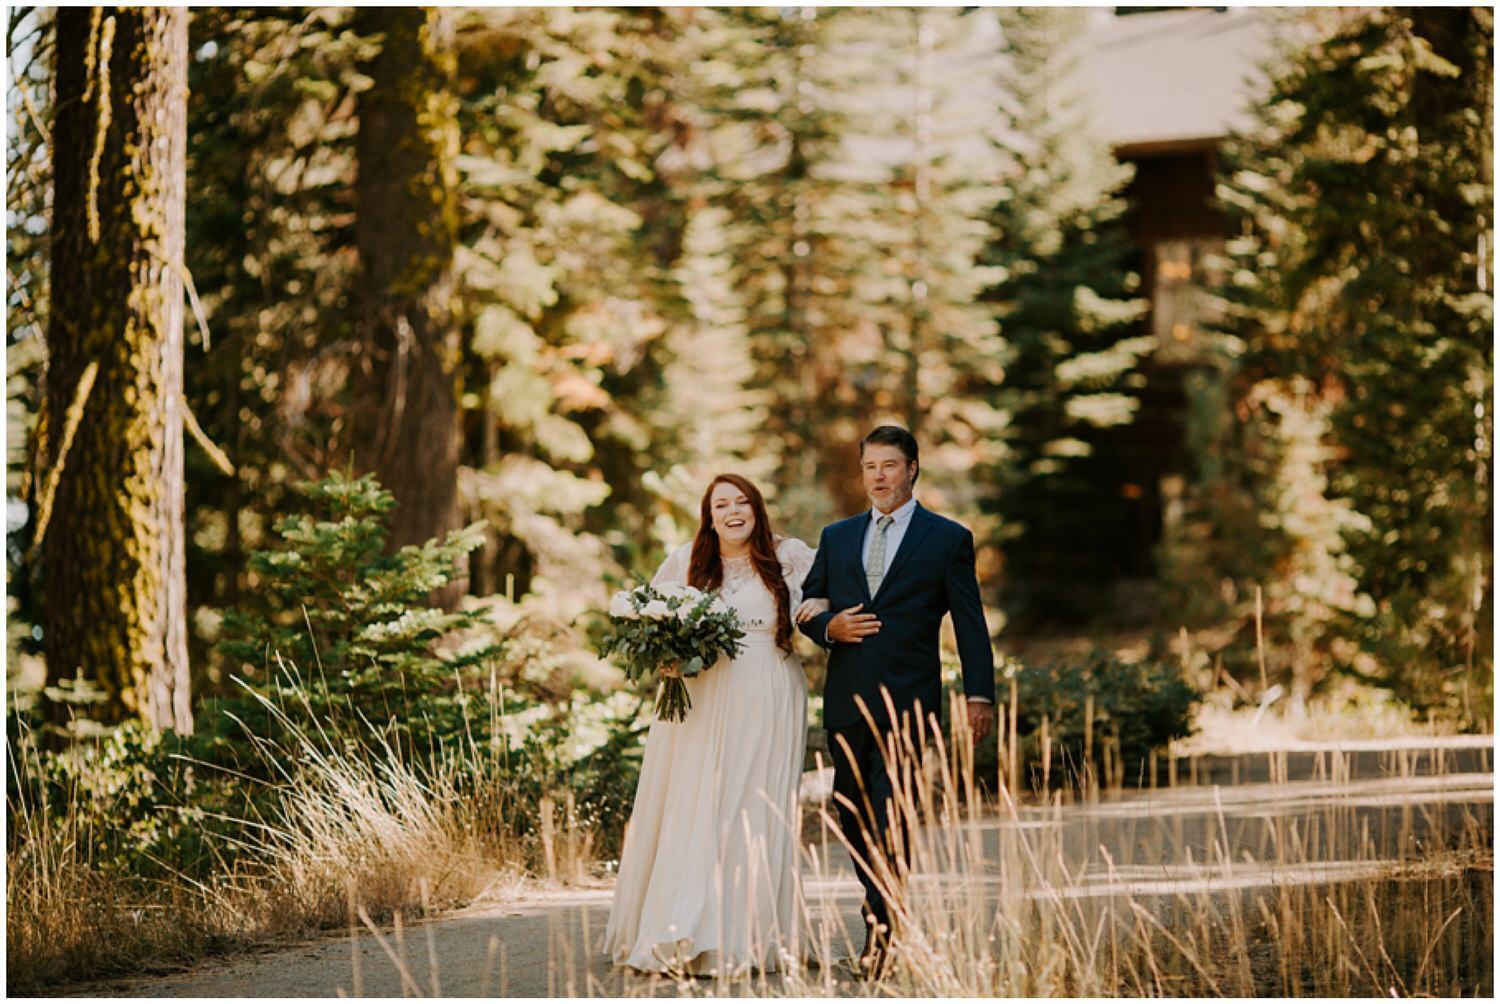 father of bride walking her down the aisle at forest wedding